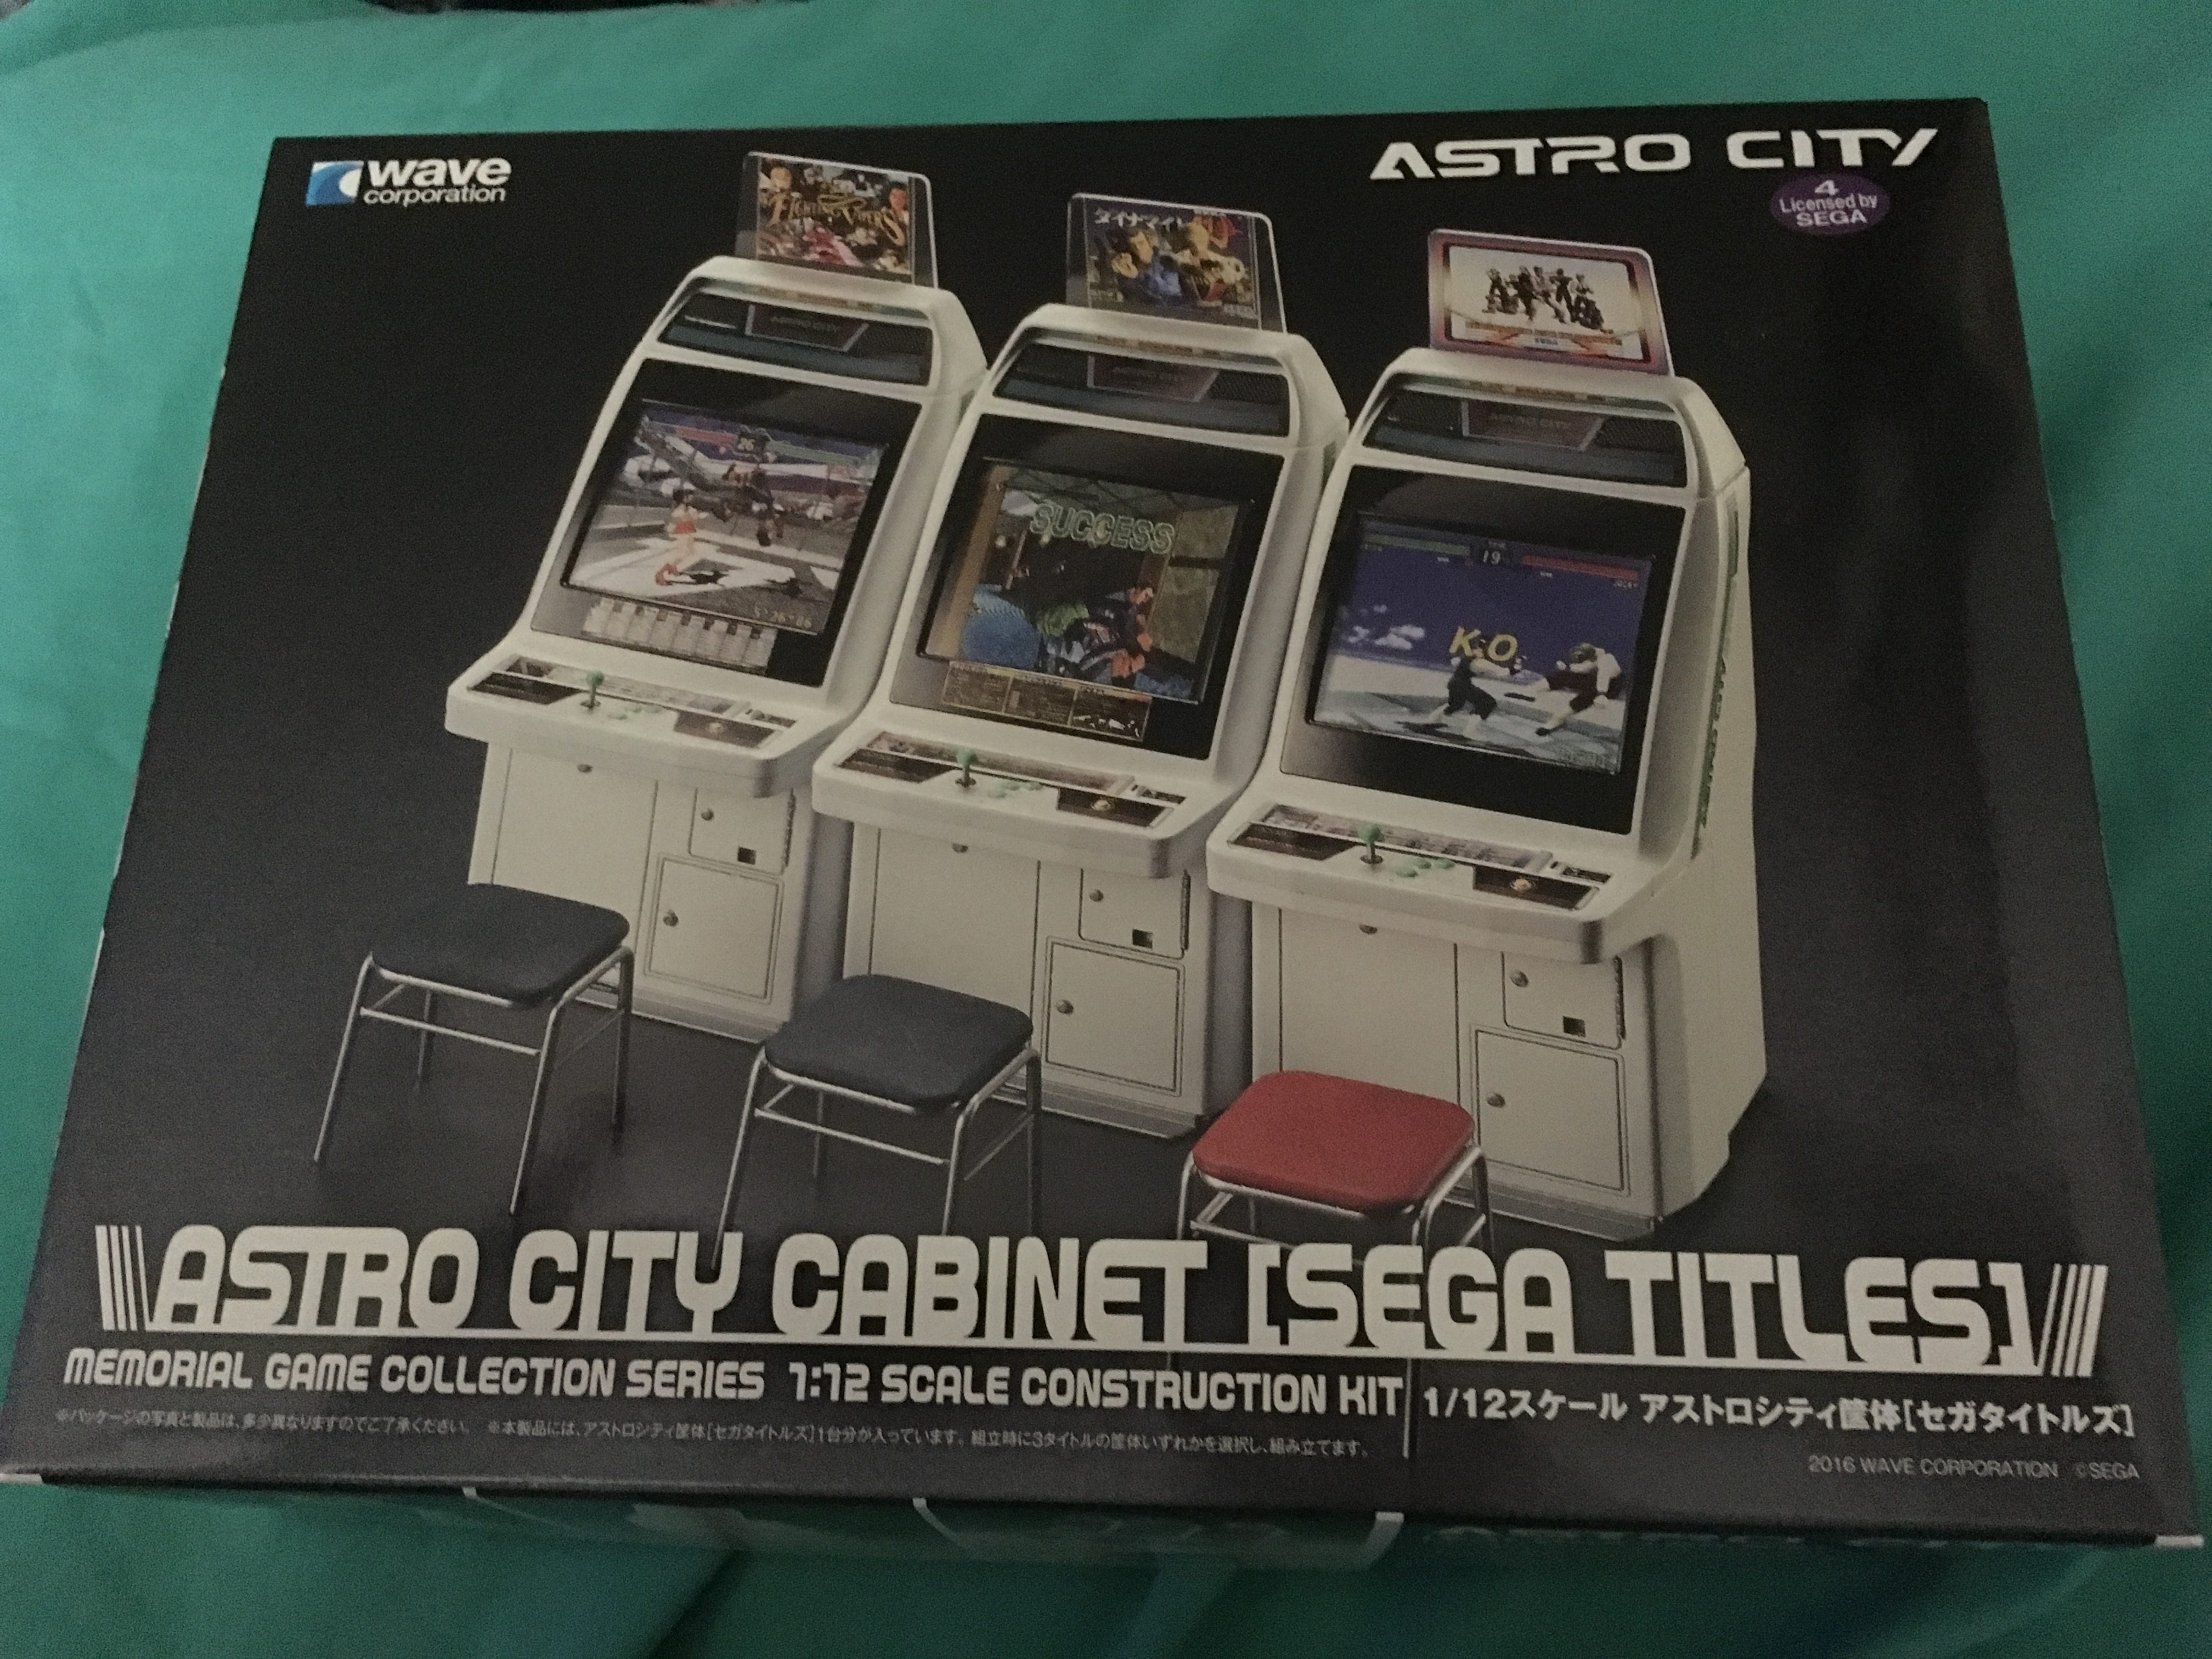 Review/Build: Sega Astro City 1/12 cabinet model by WAVE | Gaming.moe